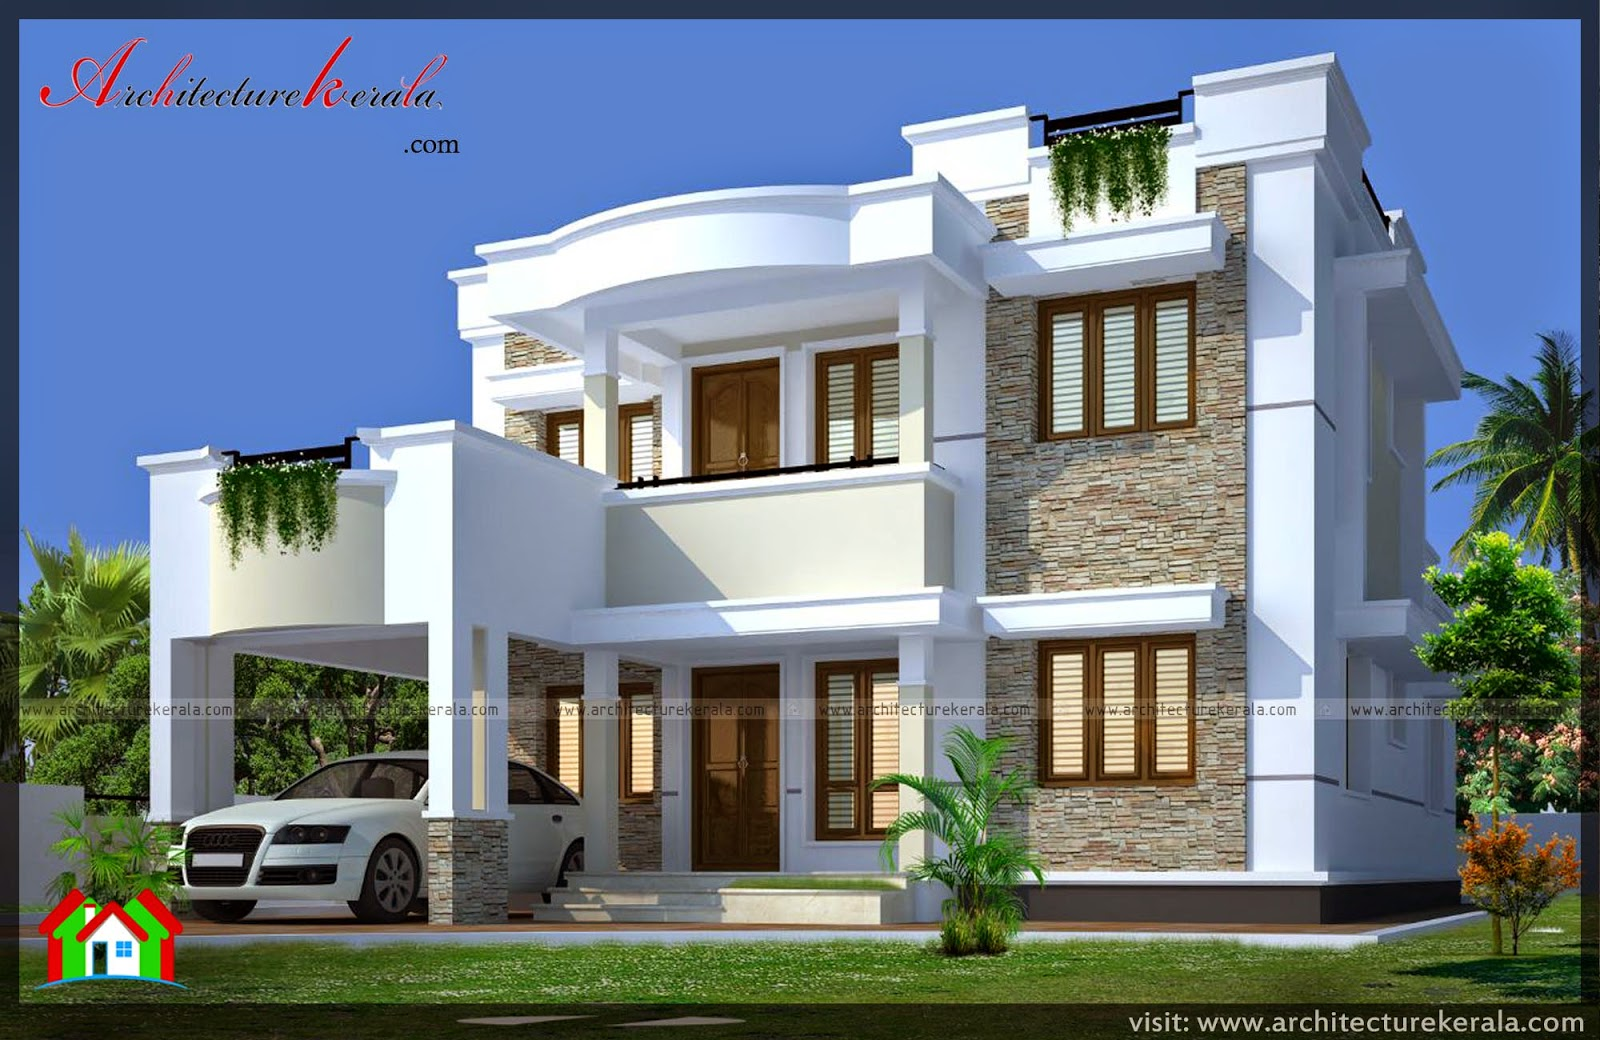 Contemporary elevation and house plan architecture kerala for Contemporary house in kerala